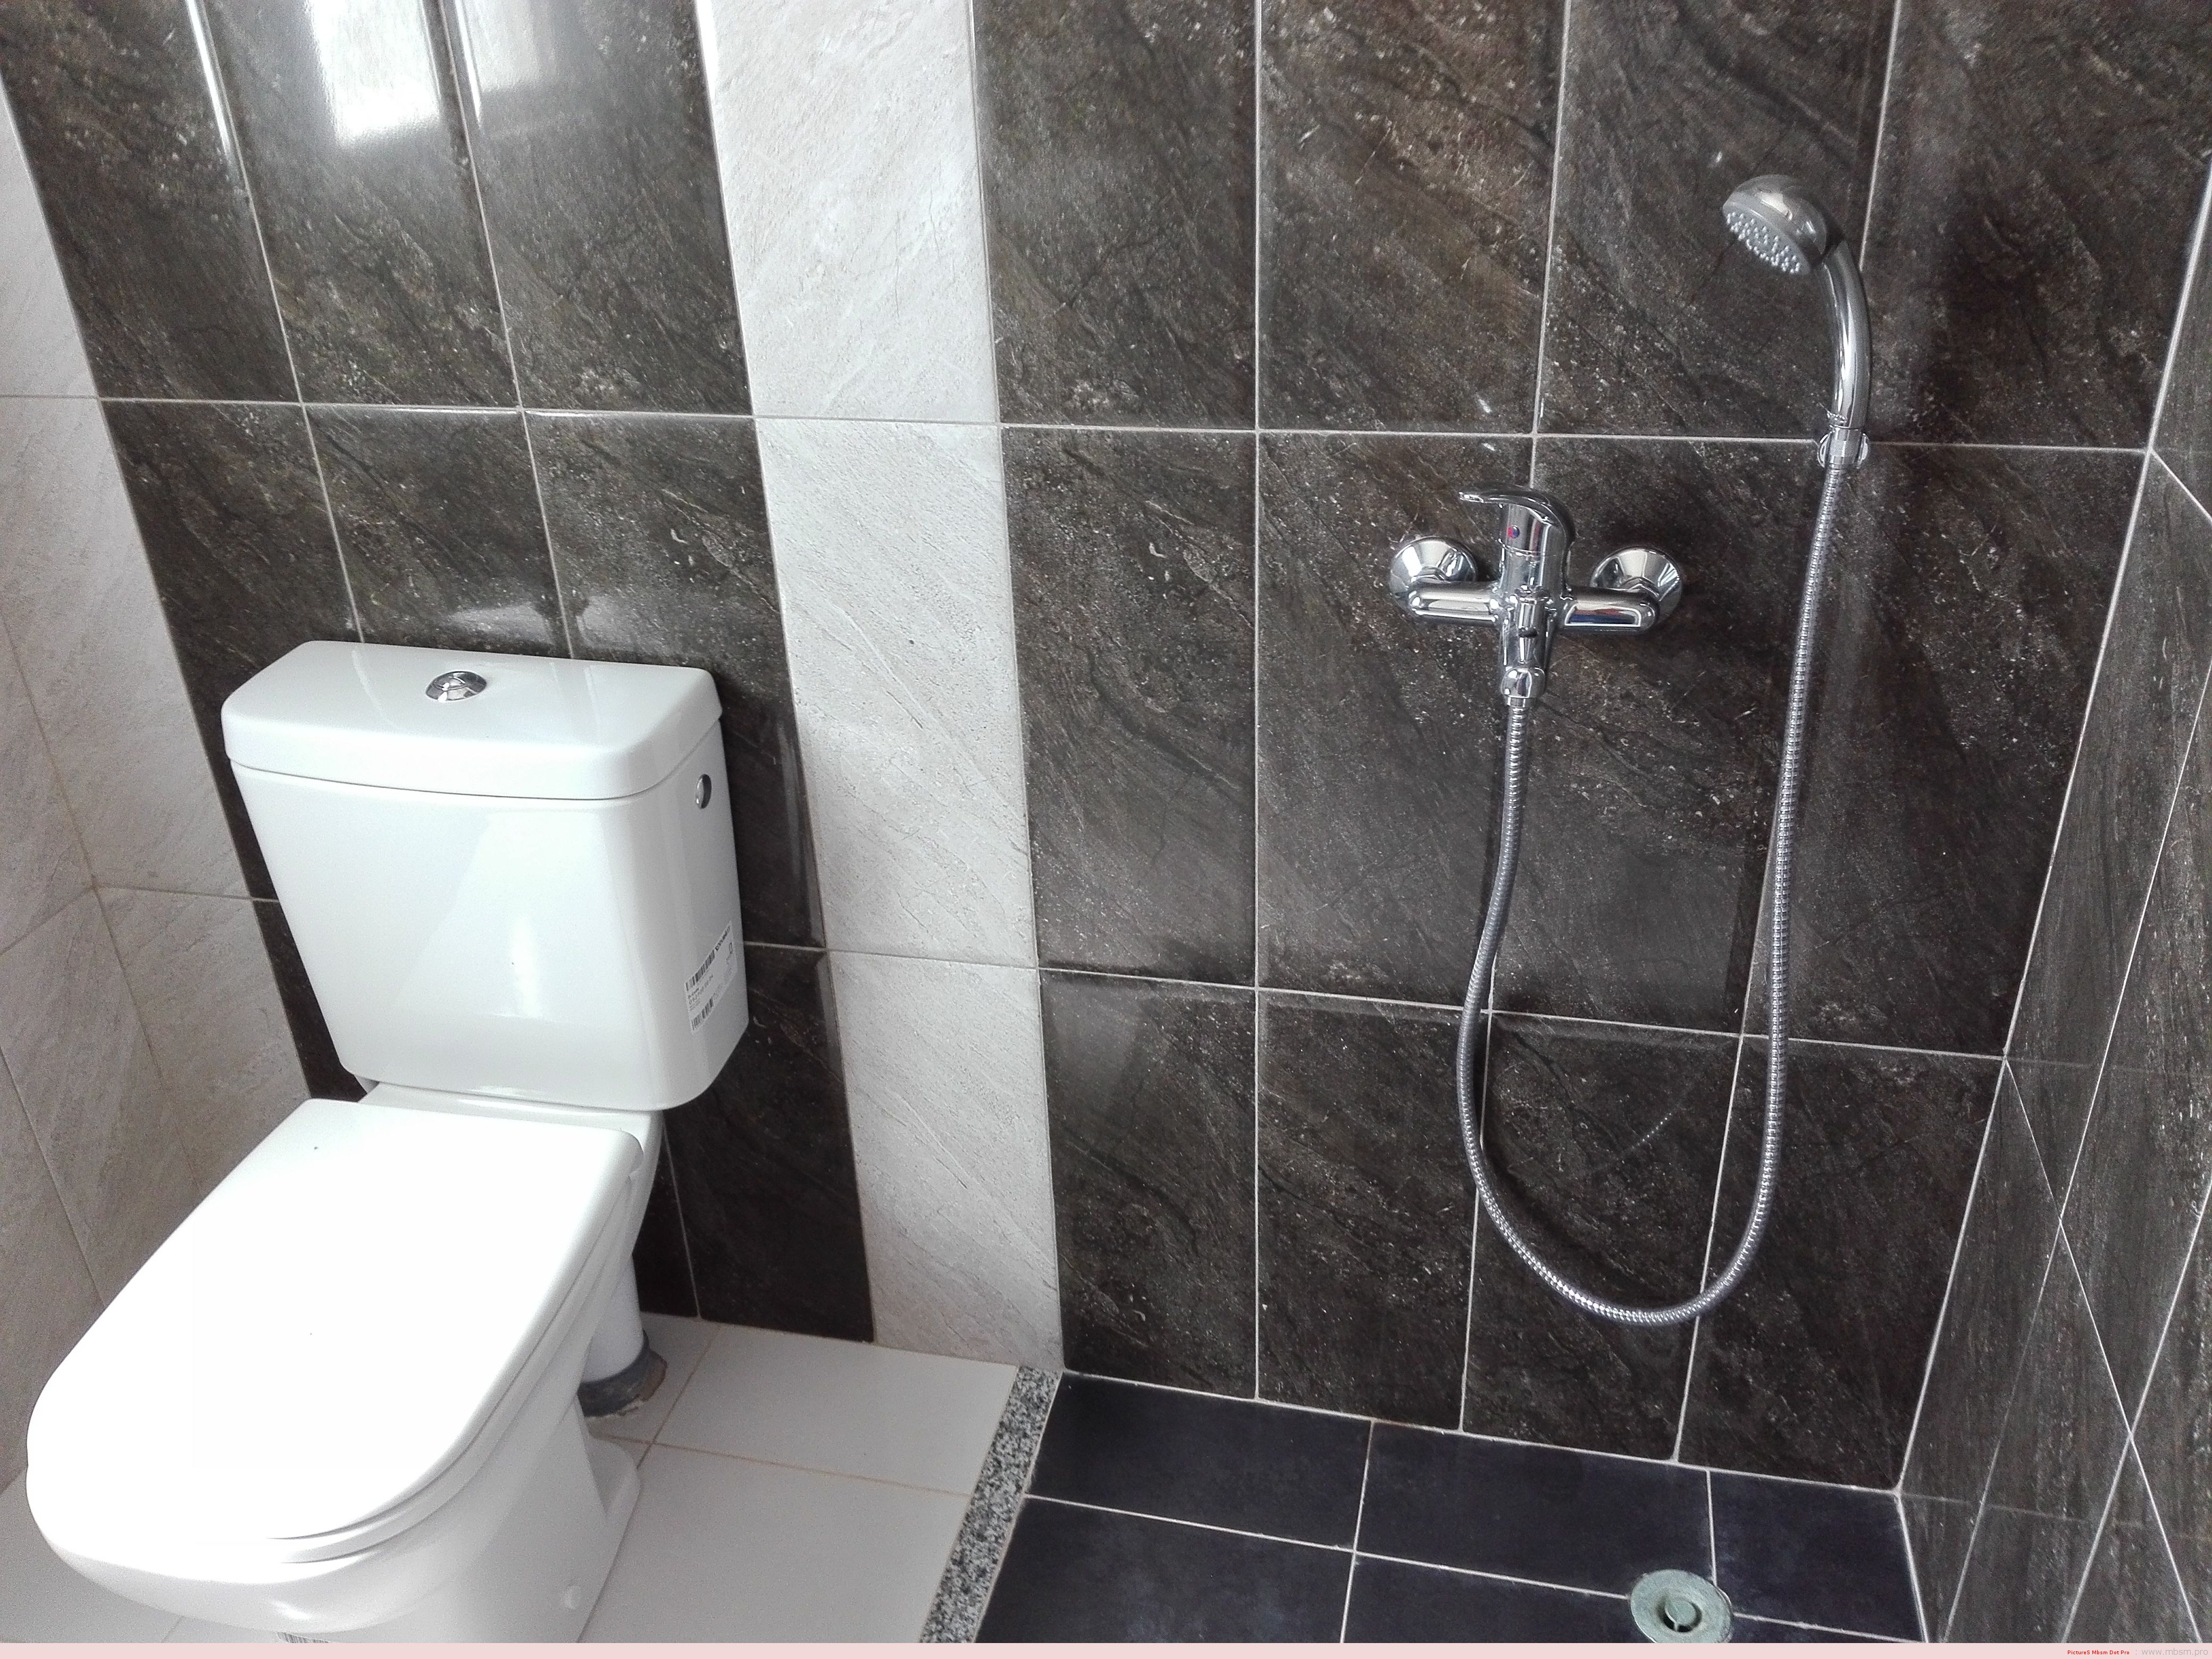 wwwmbsmpro--plomberie--finition-douche--installation-multicouche-avec-collecteur-mbsm-dot-pro